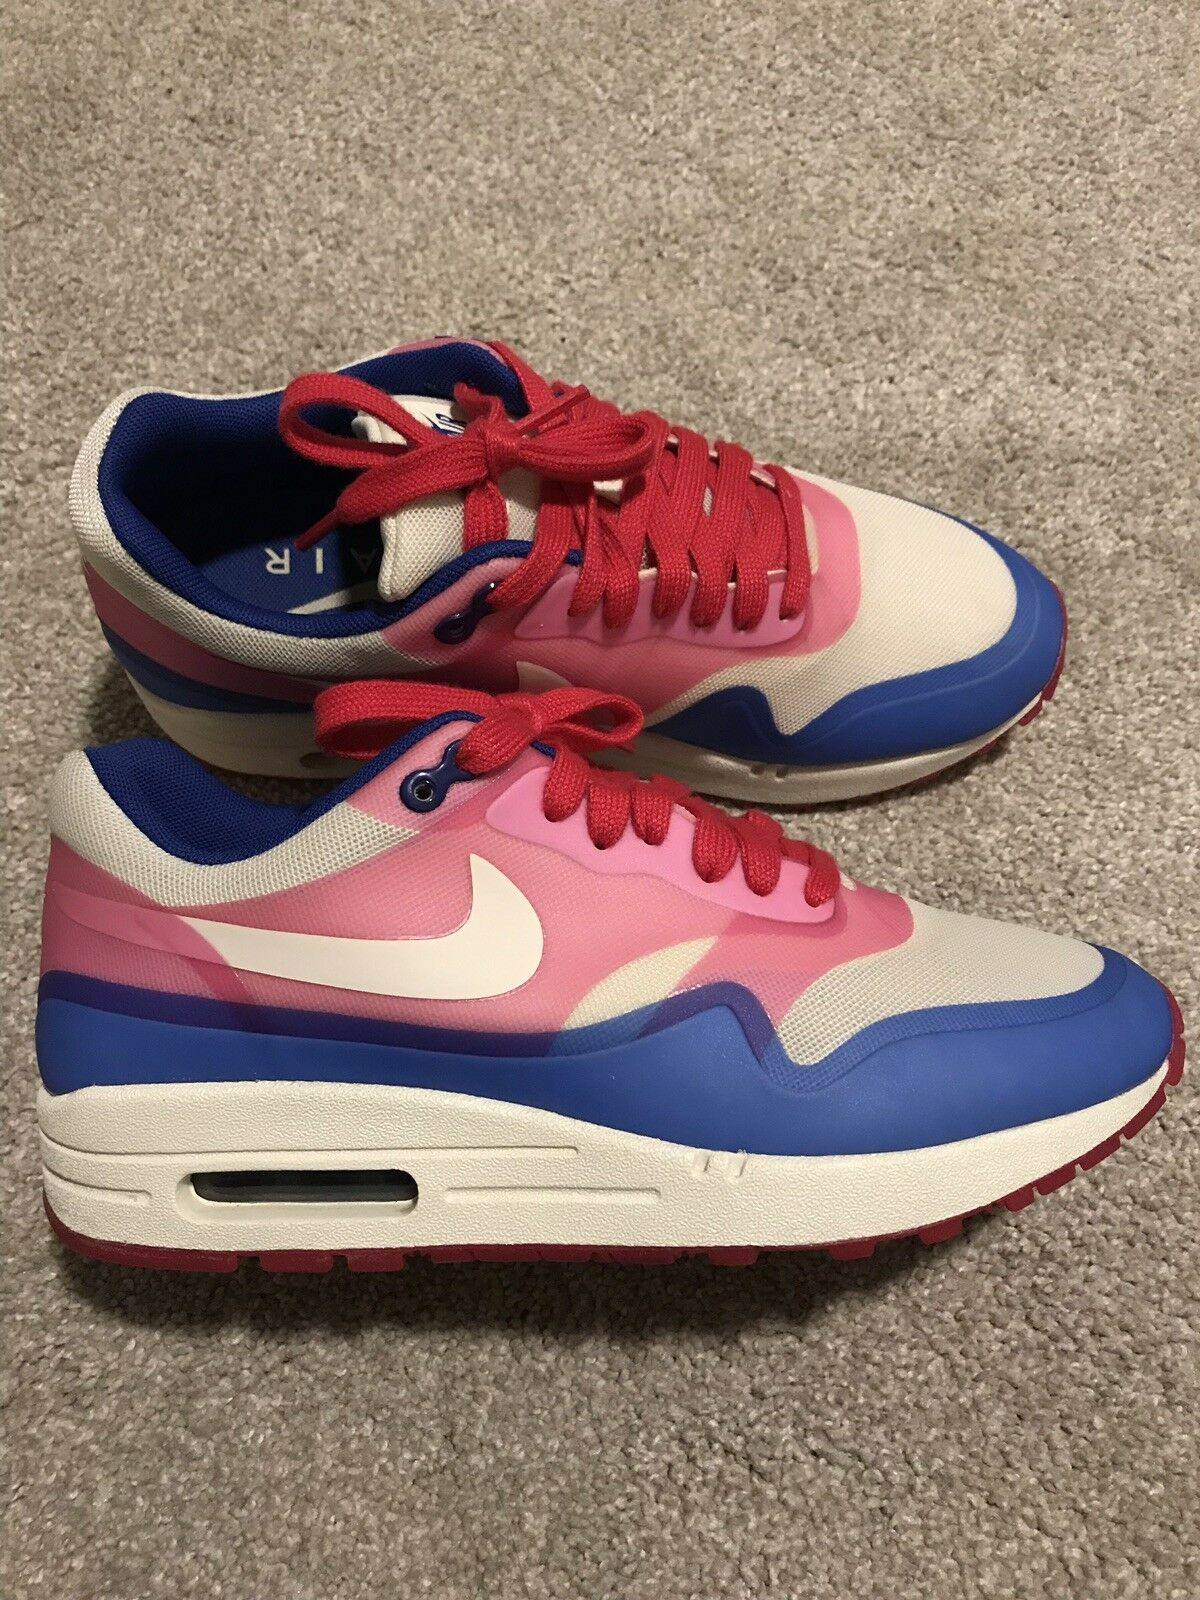 Nike Air Max 1 Hyperfuse Premium Sail Pink bluee Women's Size 7.